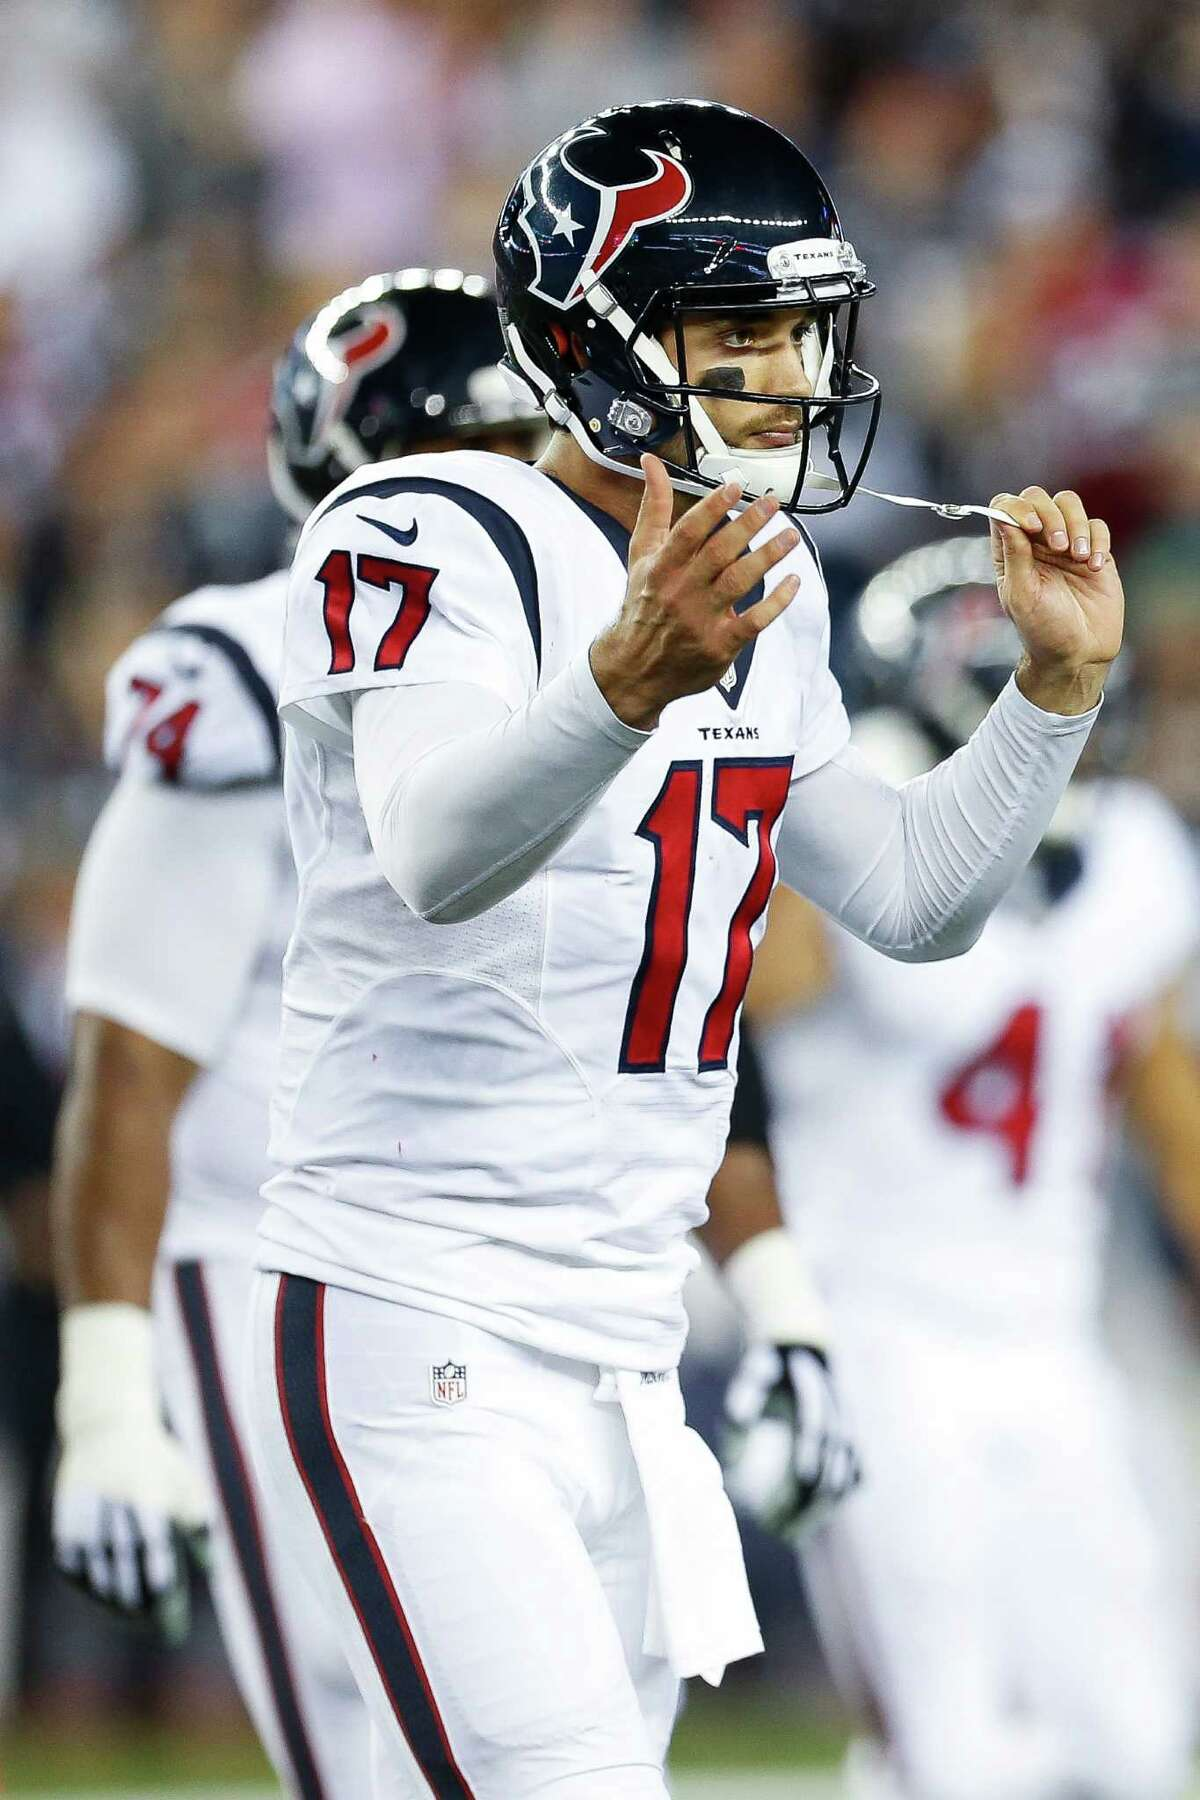 Houston Texans quarterback Brock Osweiler (17) reacts while coming off the field during the fourth quarter of an NFL football game at Gillette Stadium on Thursday, Sept. 22, 2016, in Foxborough, Mass.